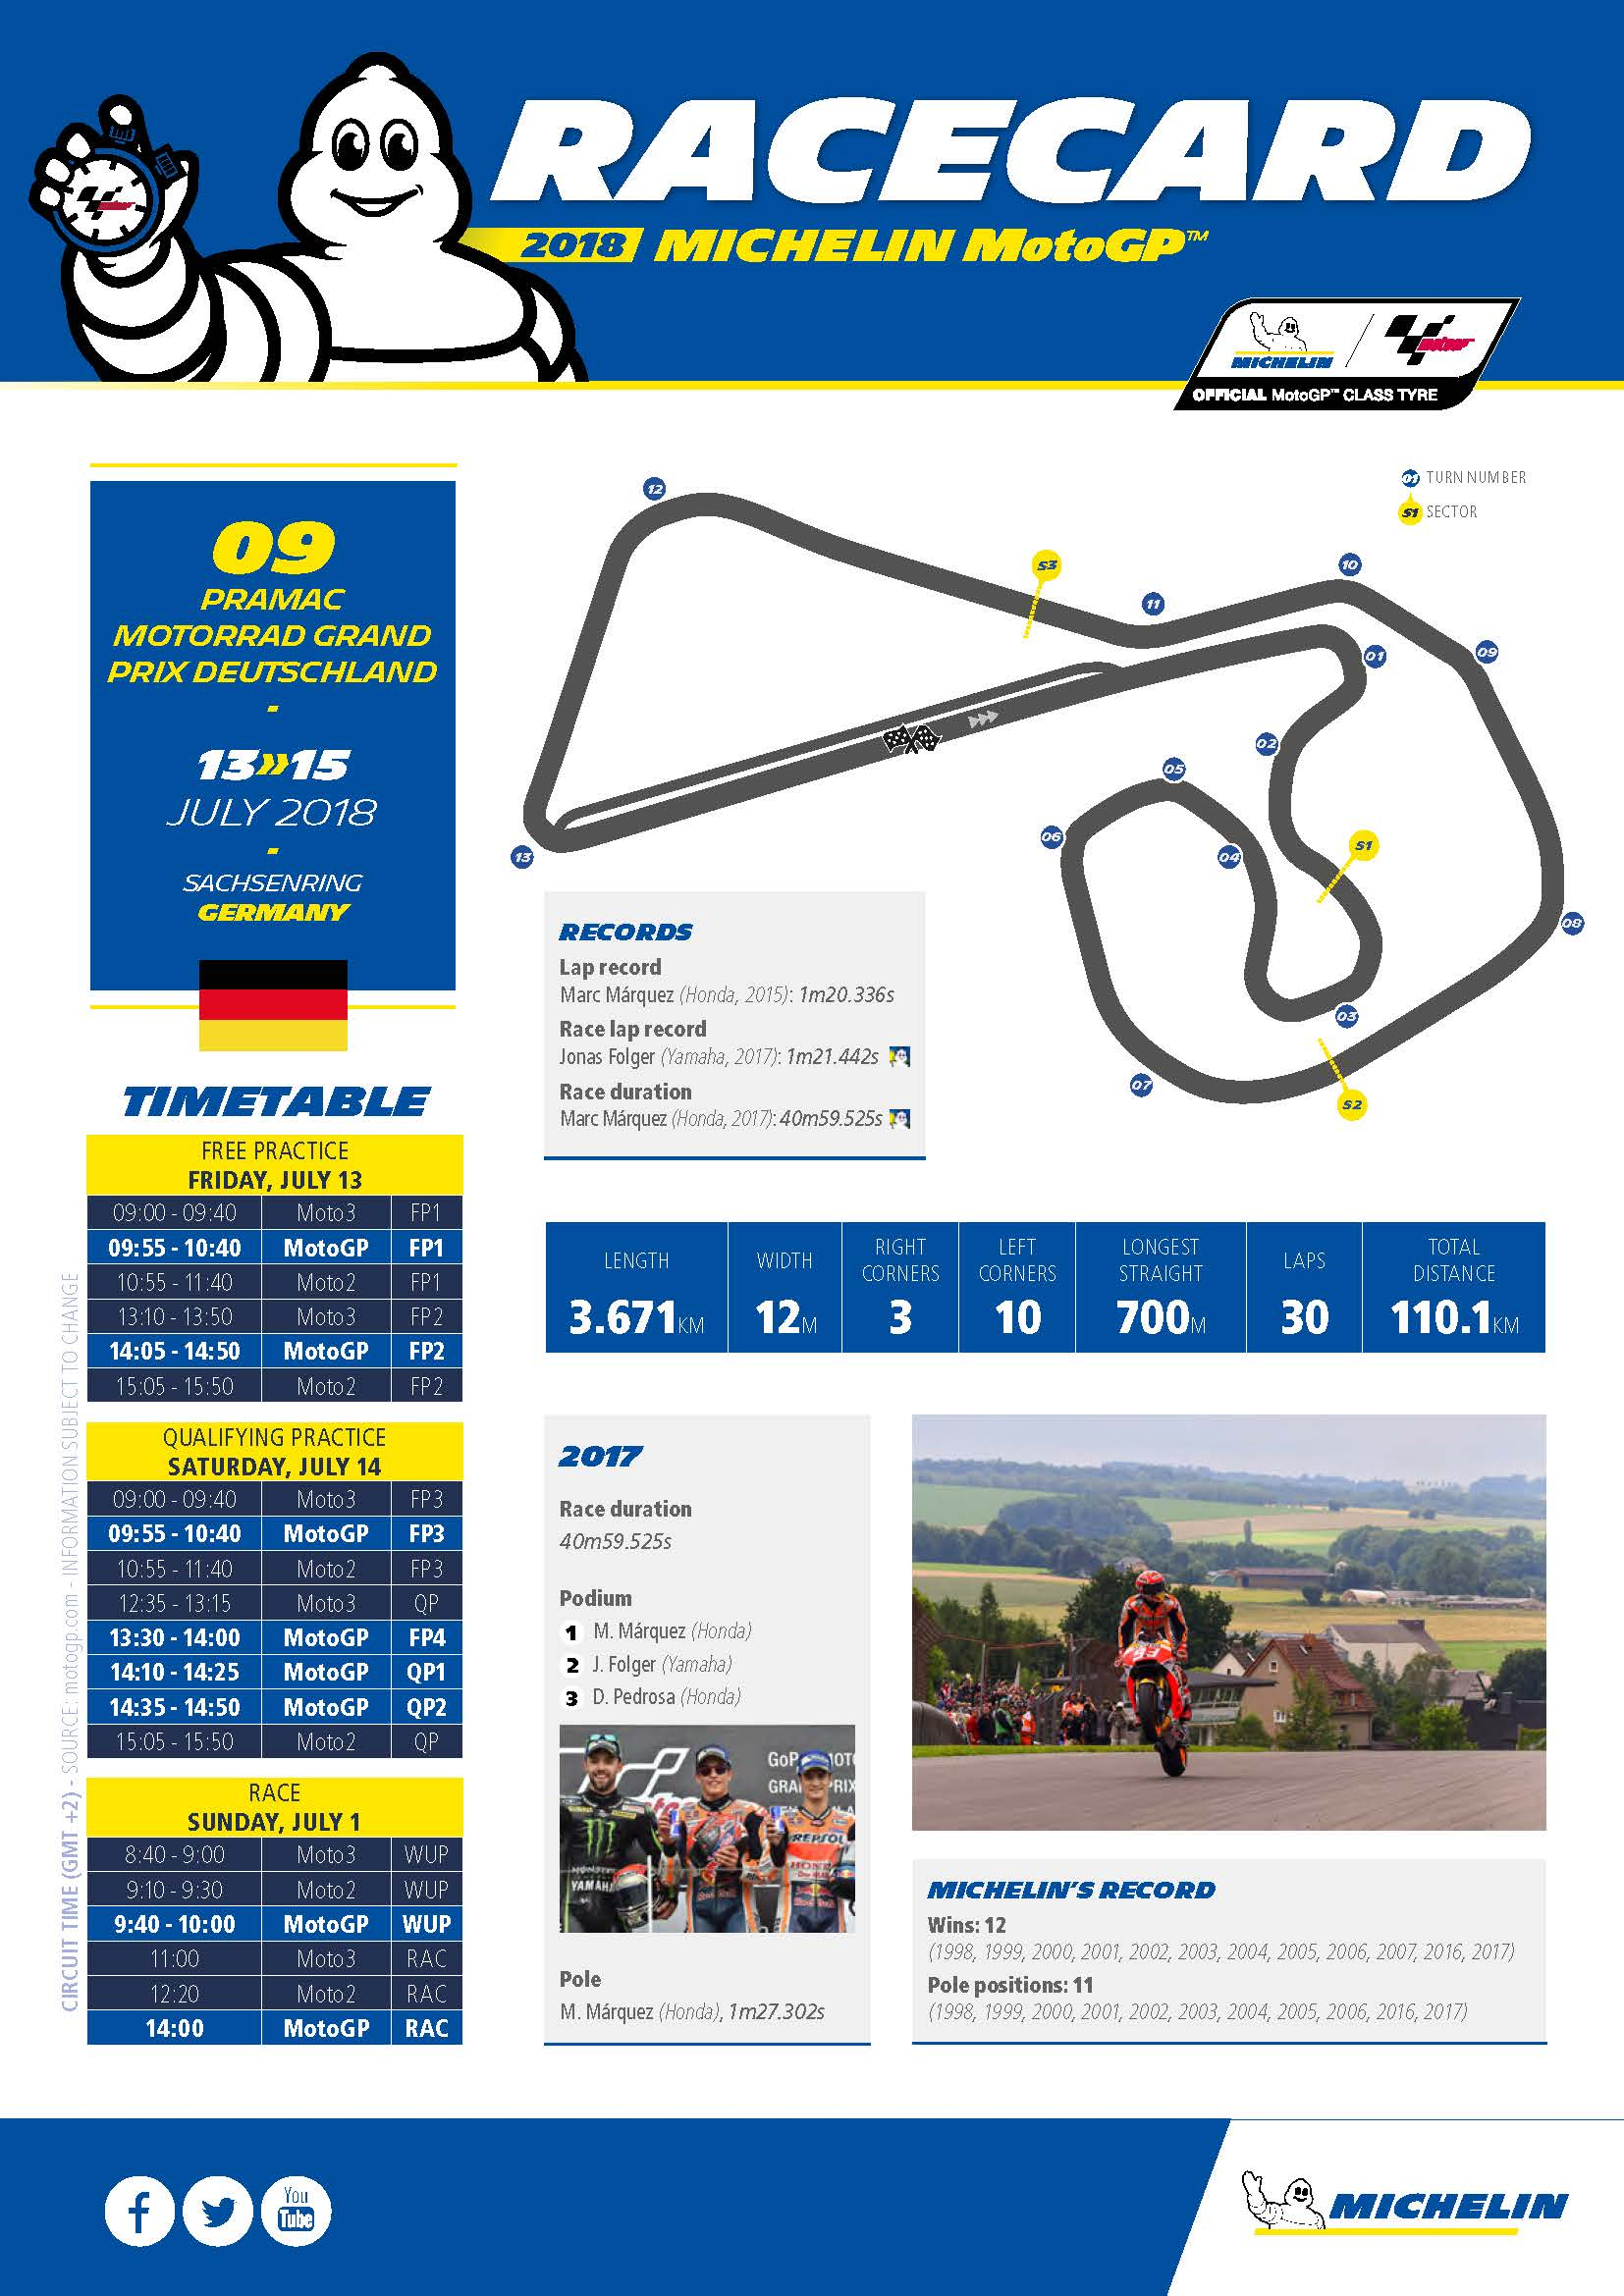 9-AllemagneGP_ MICHELIN_MotoGP_Racecard_GB_Page_1